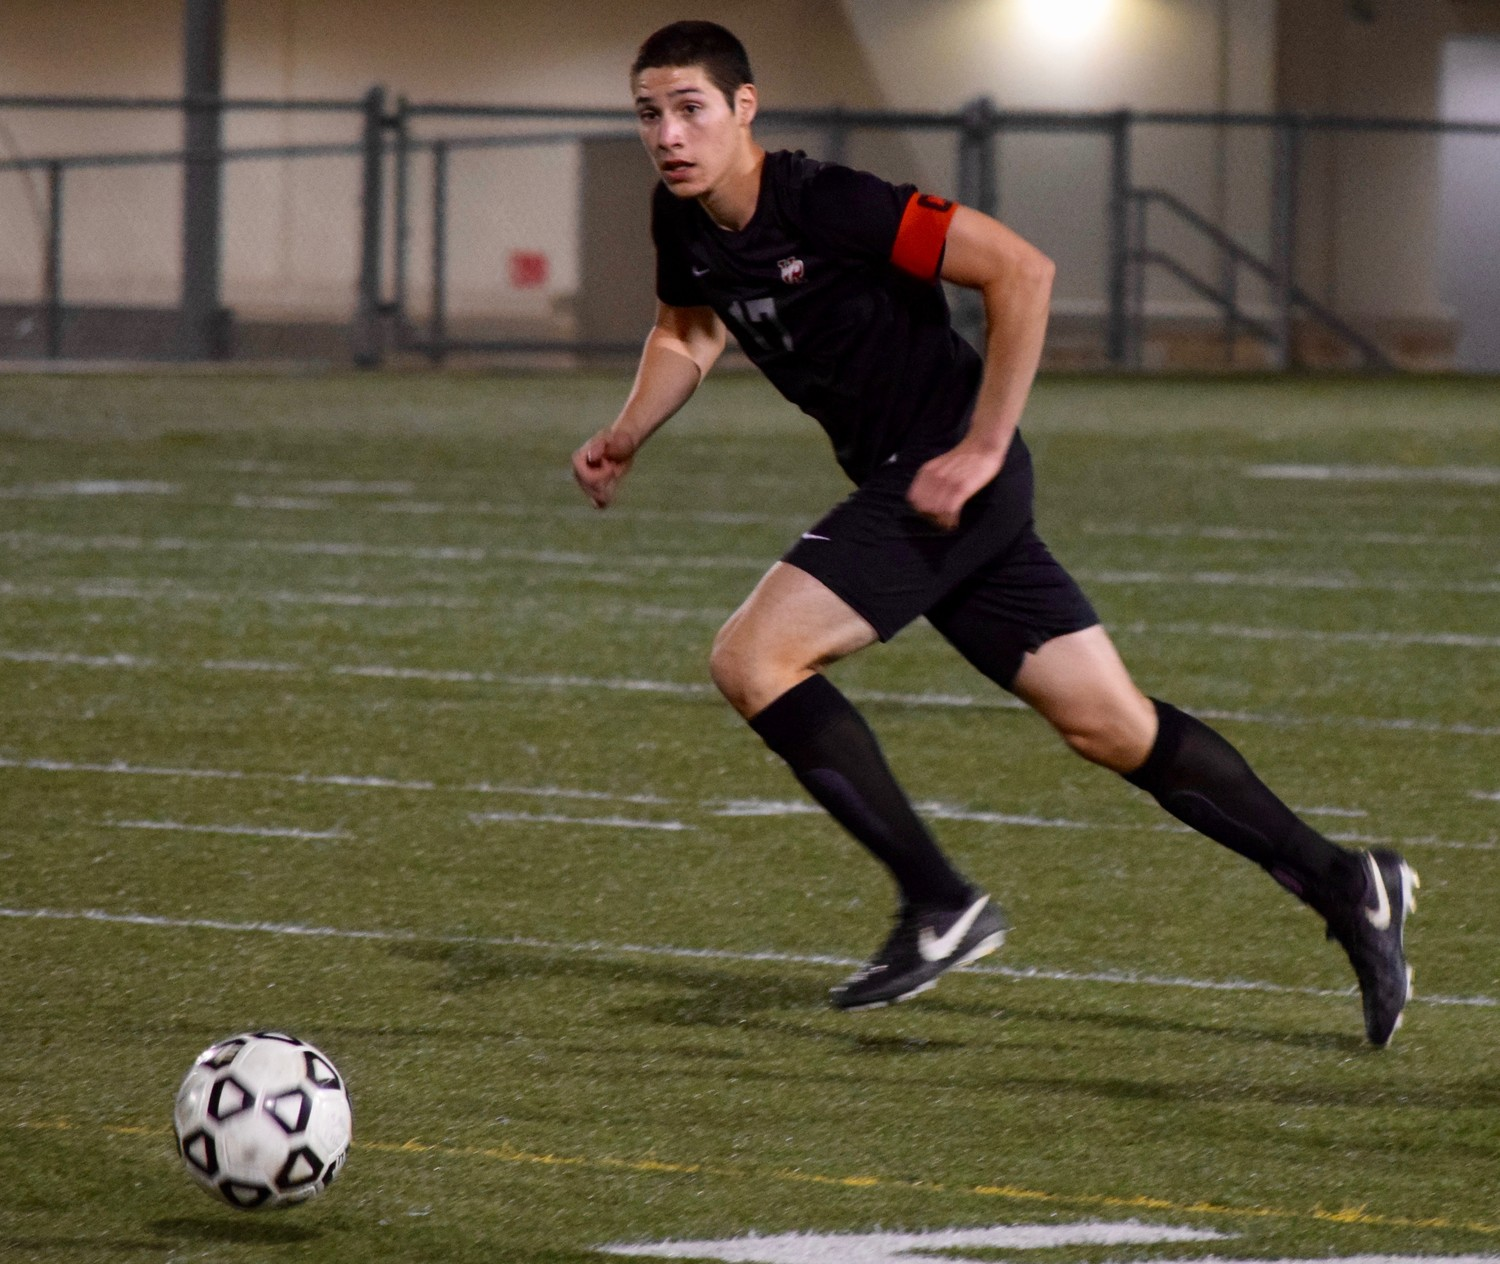 Diego Valadez and Vista Ridge lost to San Antonio Johnson Thursday night in the first round of the playoffs at Dripping Springs High School.